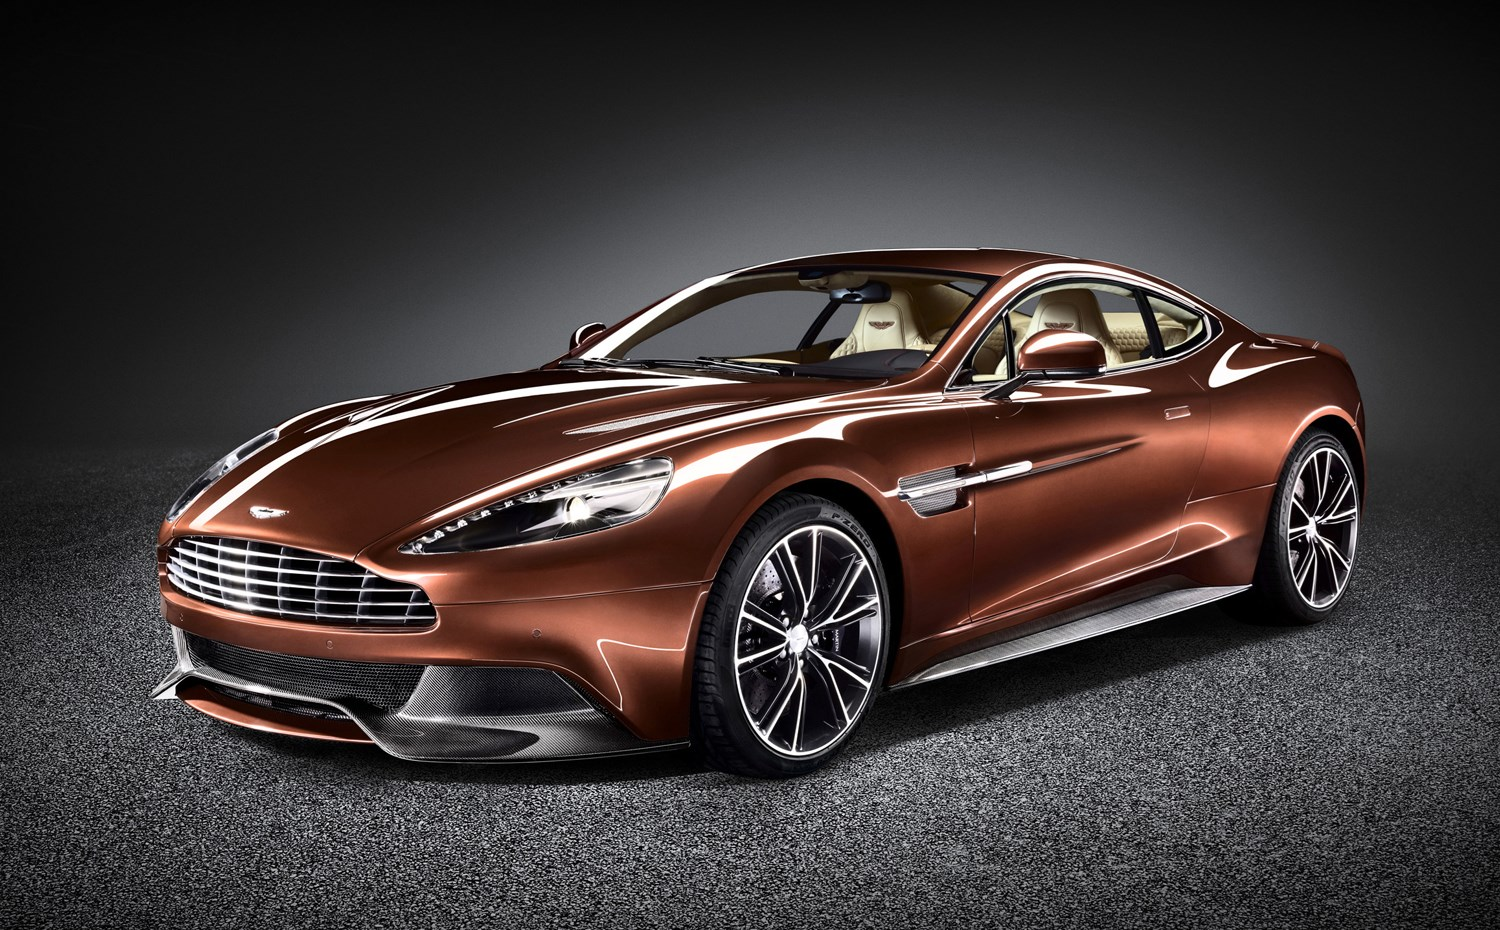 Aston Martin Vanquish Coupe Photos Parkers - How much is a aston martin